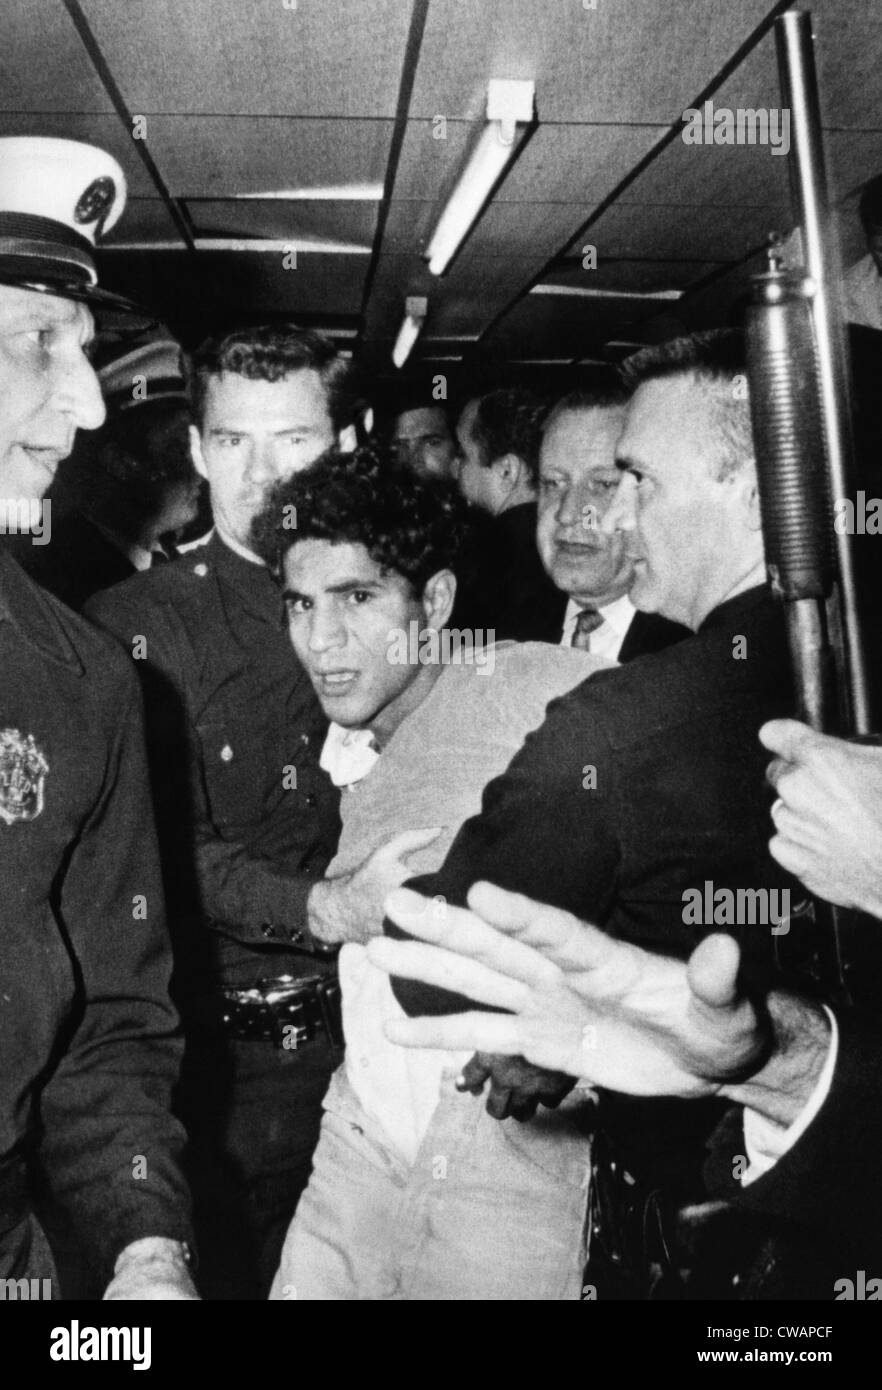 Sirhan Sirhan, the suspect in the shooting of Senator Robert F. Kennedy, being hustled out of the Ambassador Hotel, - Stock Image